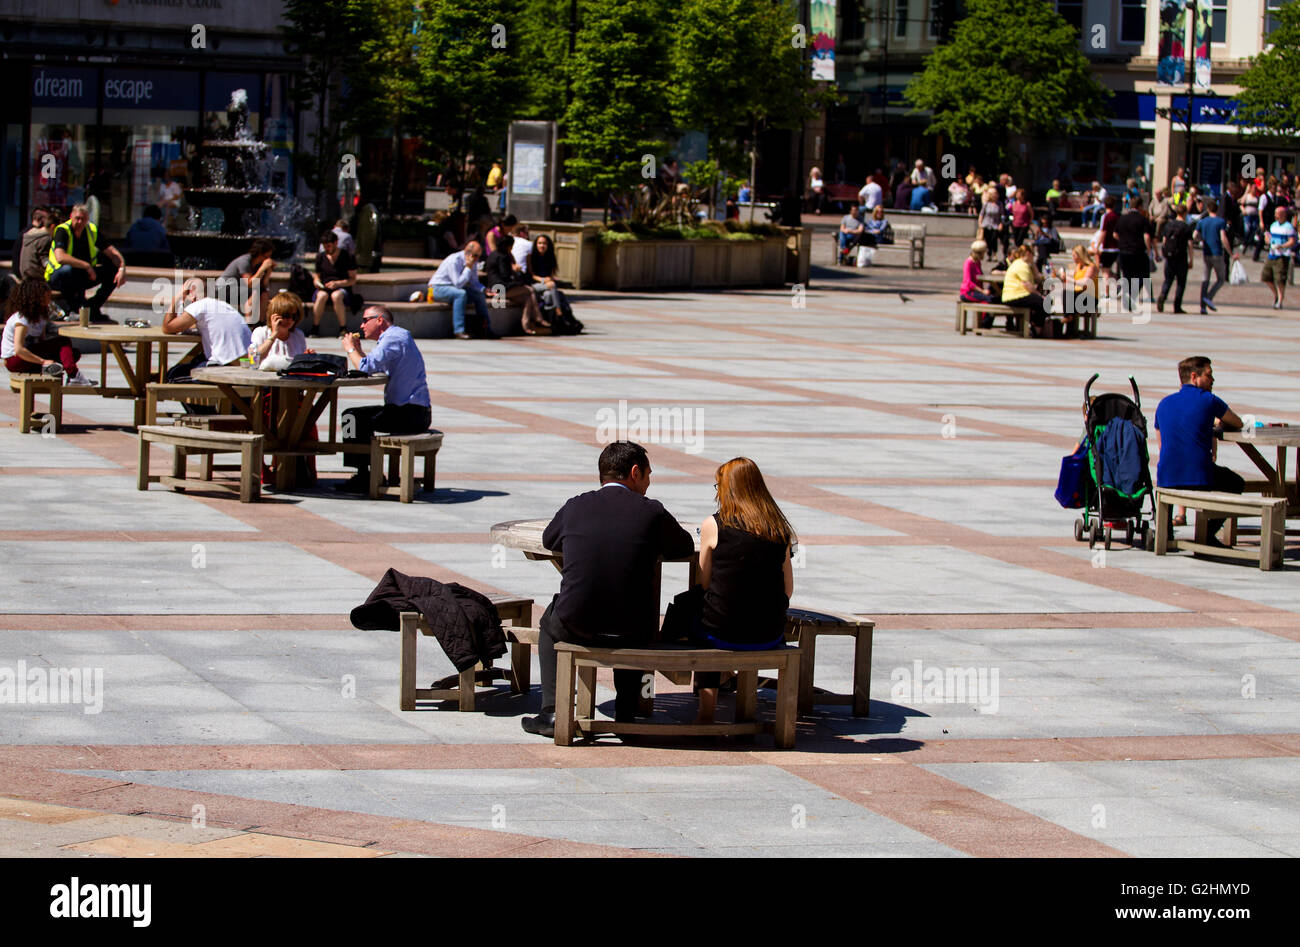 Dundee, Tayside, Scotland, UK. May 31st 2016. UK Weather: A dry and bright day with some fine sunny spells. Warm - Stock Image